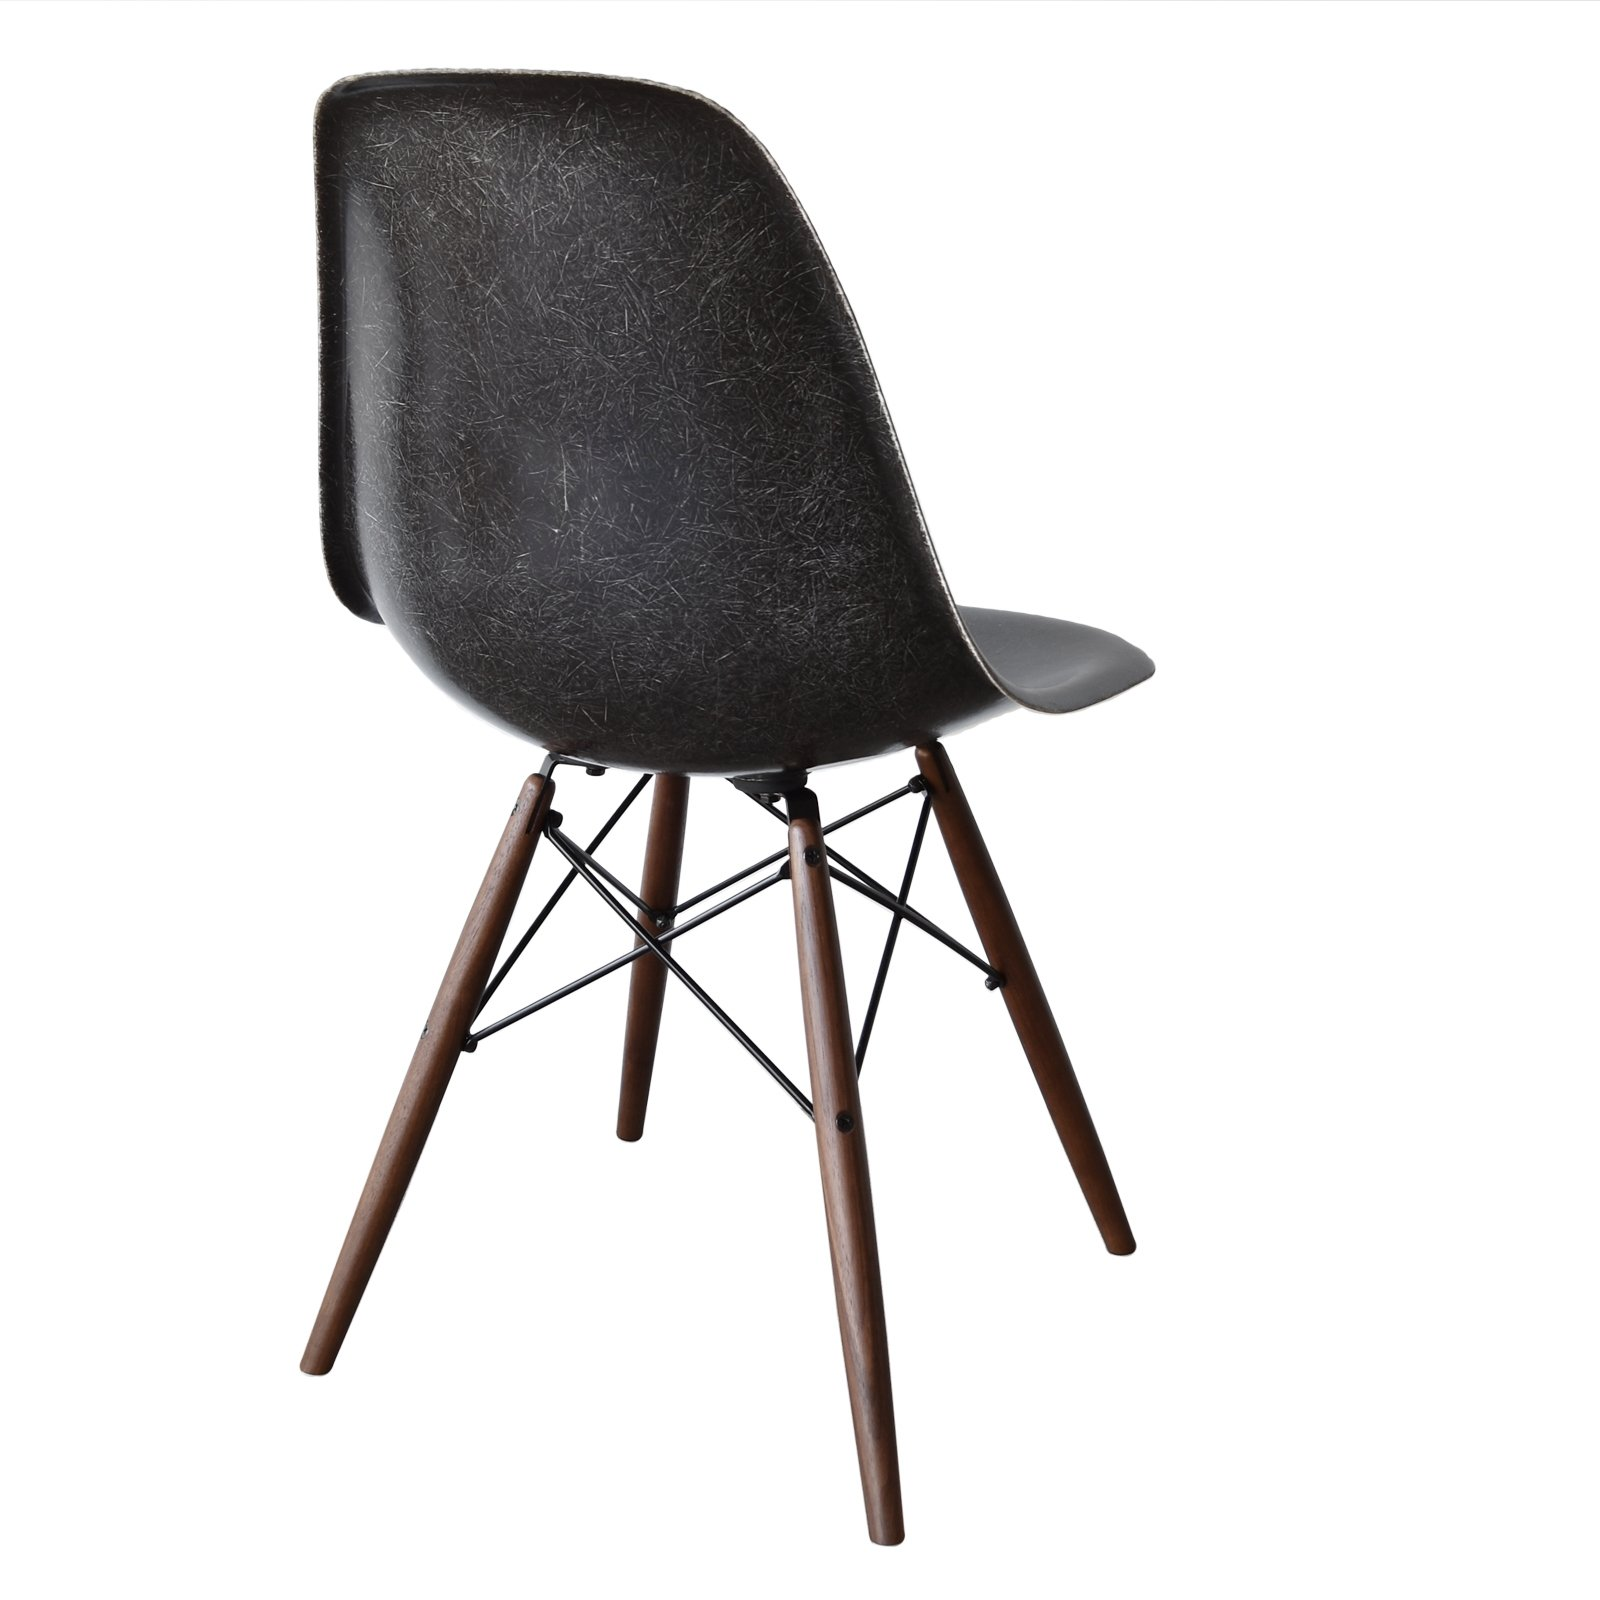 Dsw black dinner chair by charles ray eames for herman miller 1960s - Chaise dsw charles eames ...